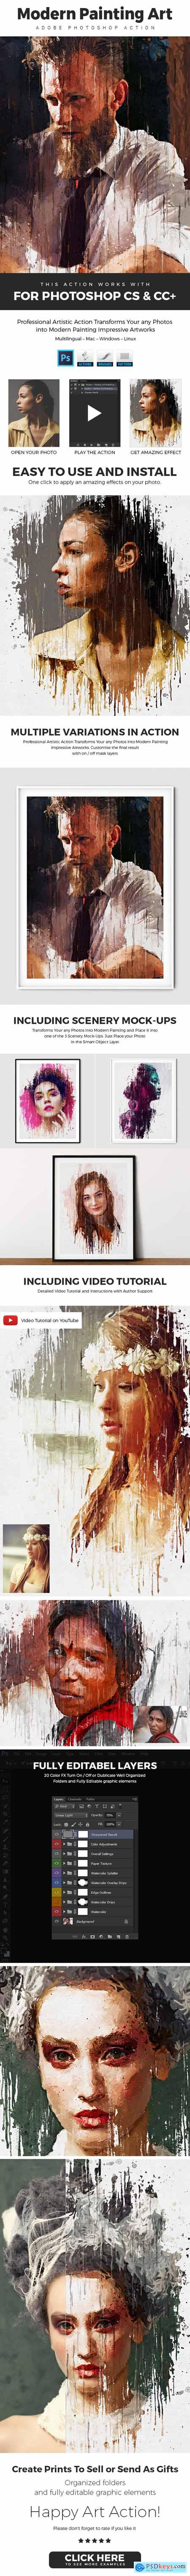 Modern - Painting Art Photoshop Action